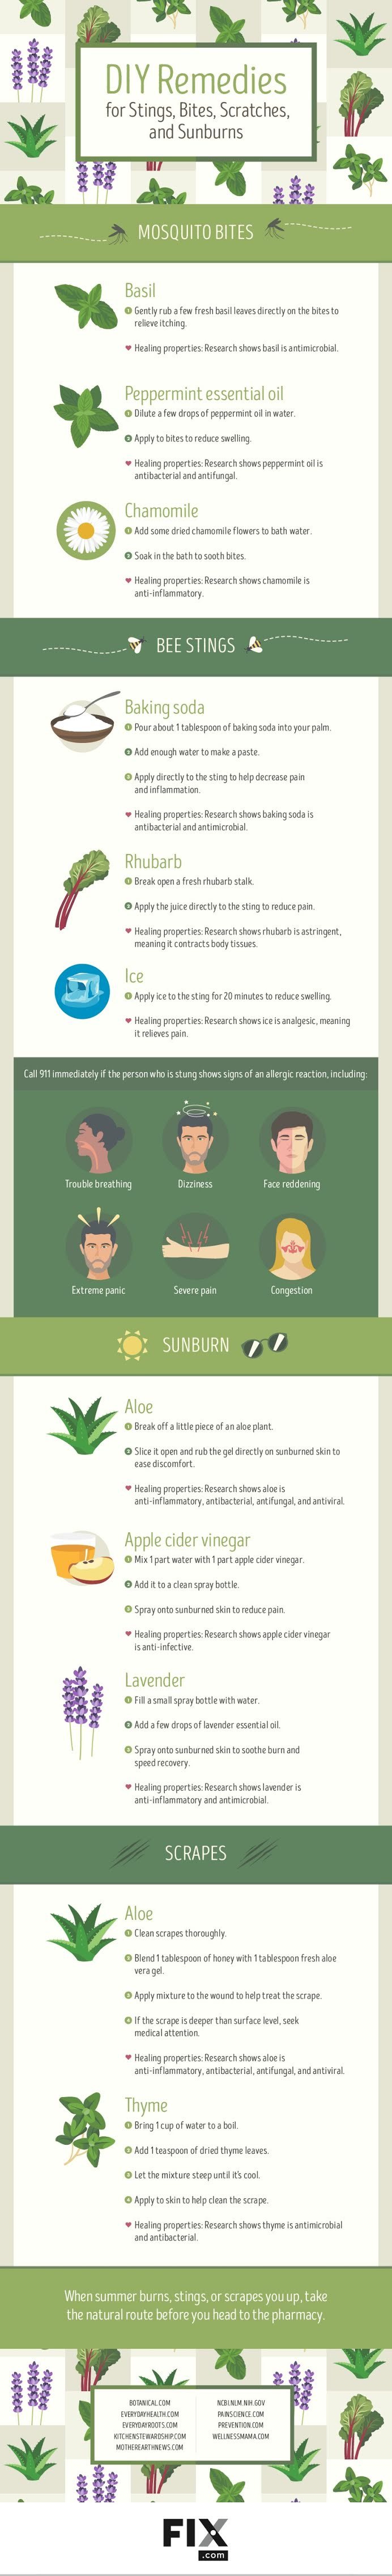 DIY Remedies for Stings, Bites, Scratches, and Sunburns #infographic